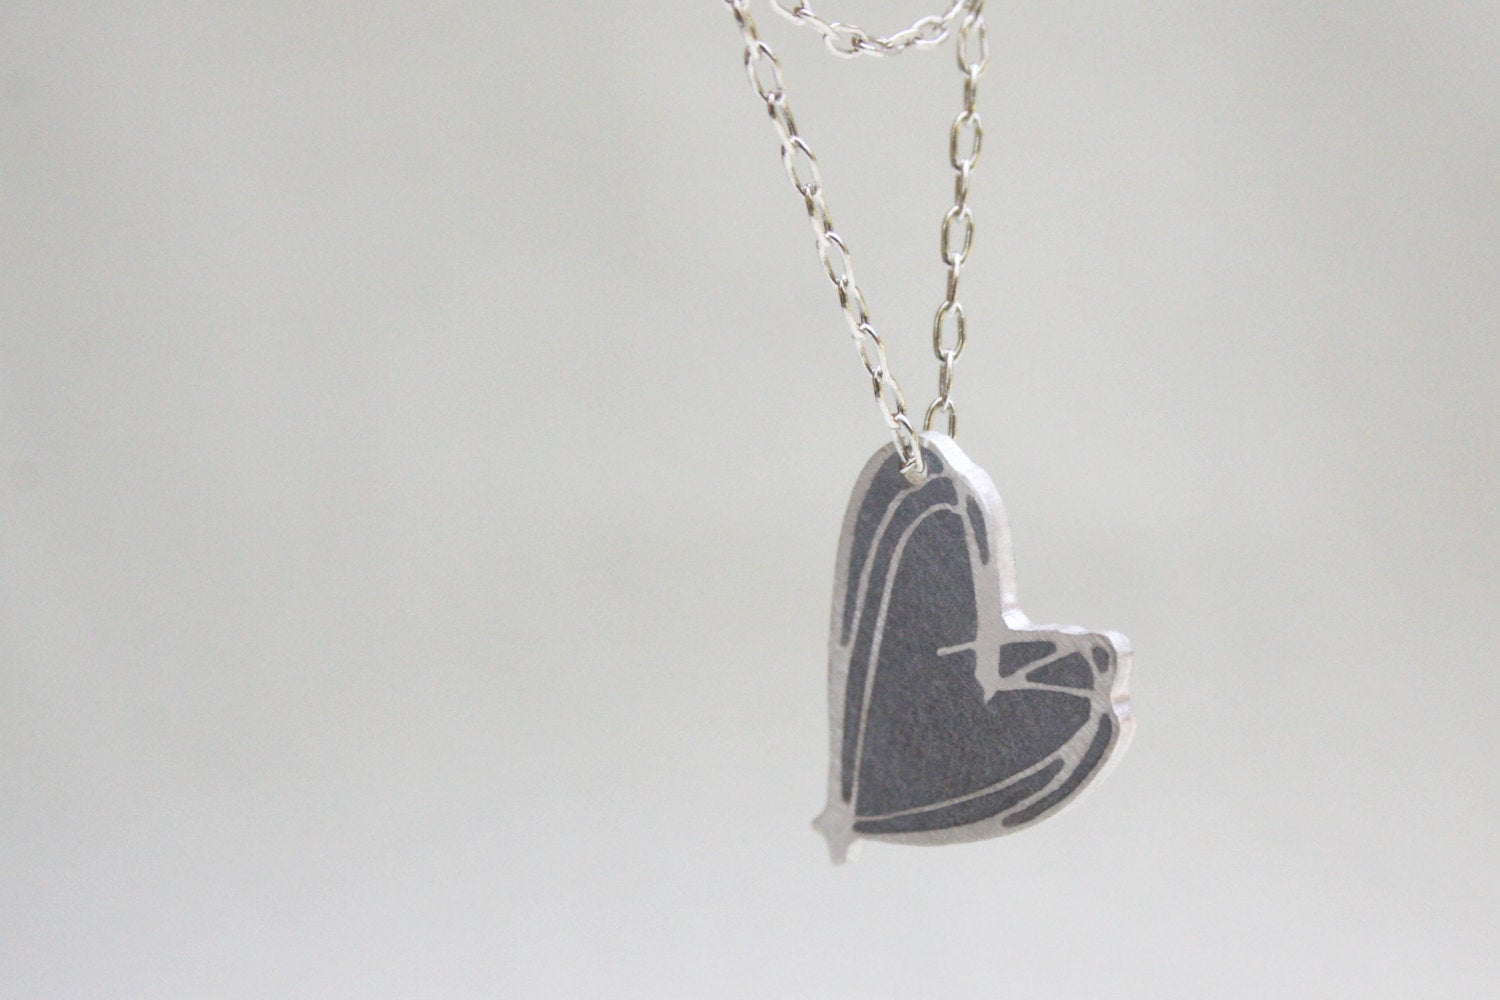 Concrete & Silver Heart Necklace For Valentine's Day Gift - hs